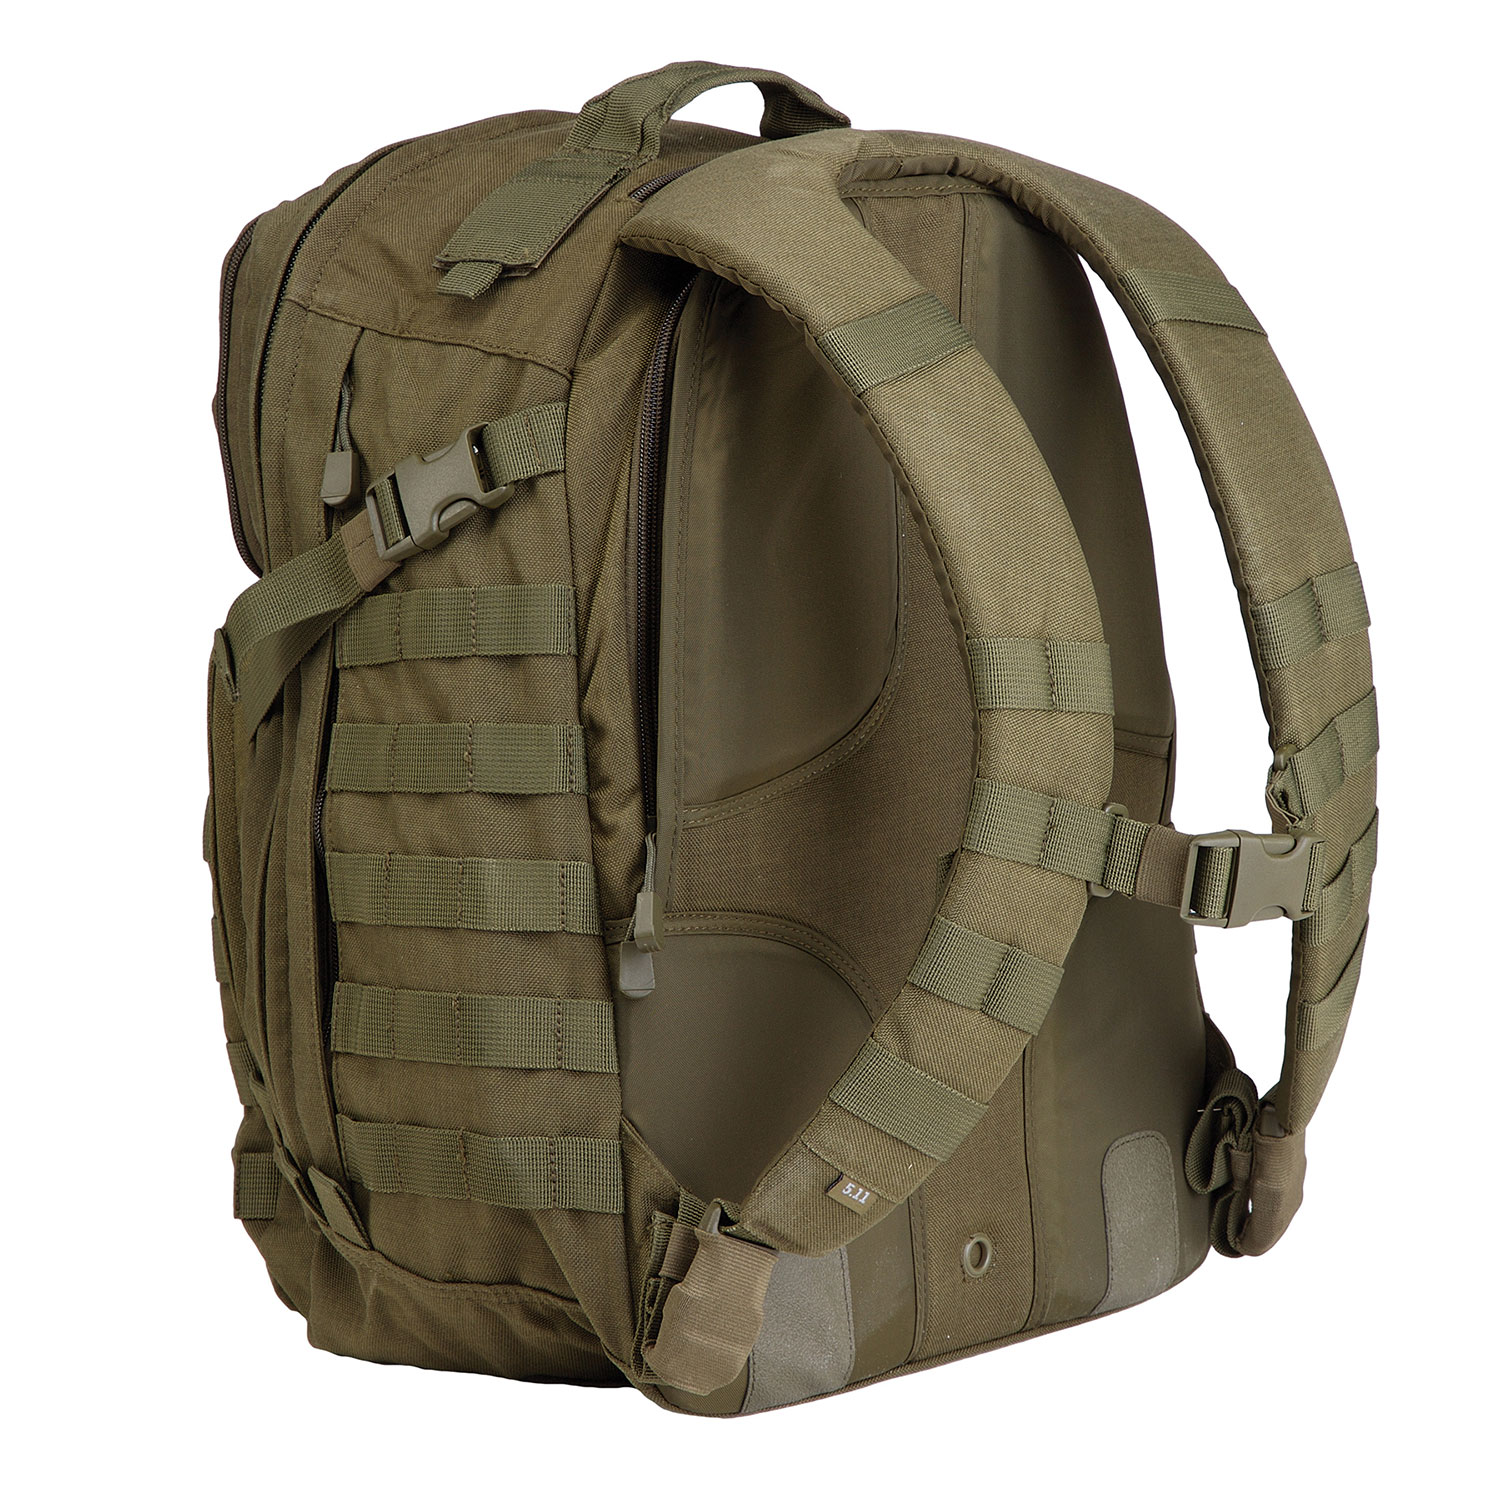 80d2aef29f73 ... Tactical Rush 24 Backpack. FREE GIFT WITH PURCHASE! For a limited time  only. Item will be added to your cart automatically. Free Duty Bag